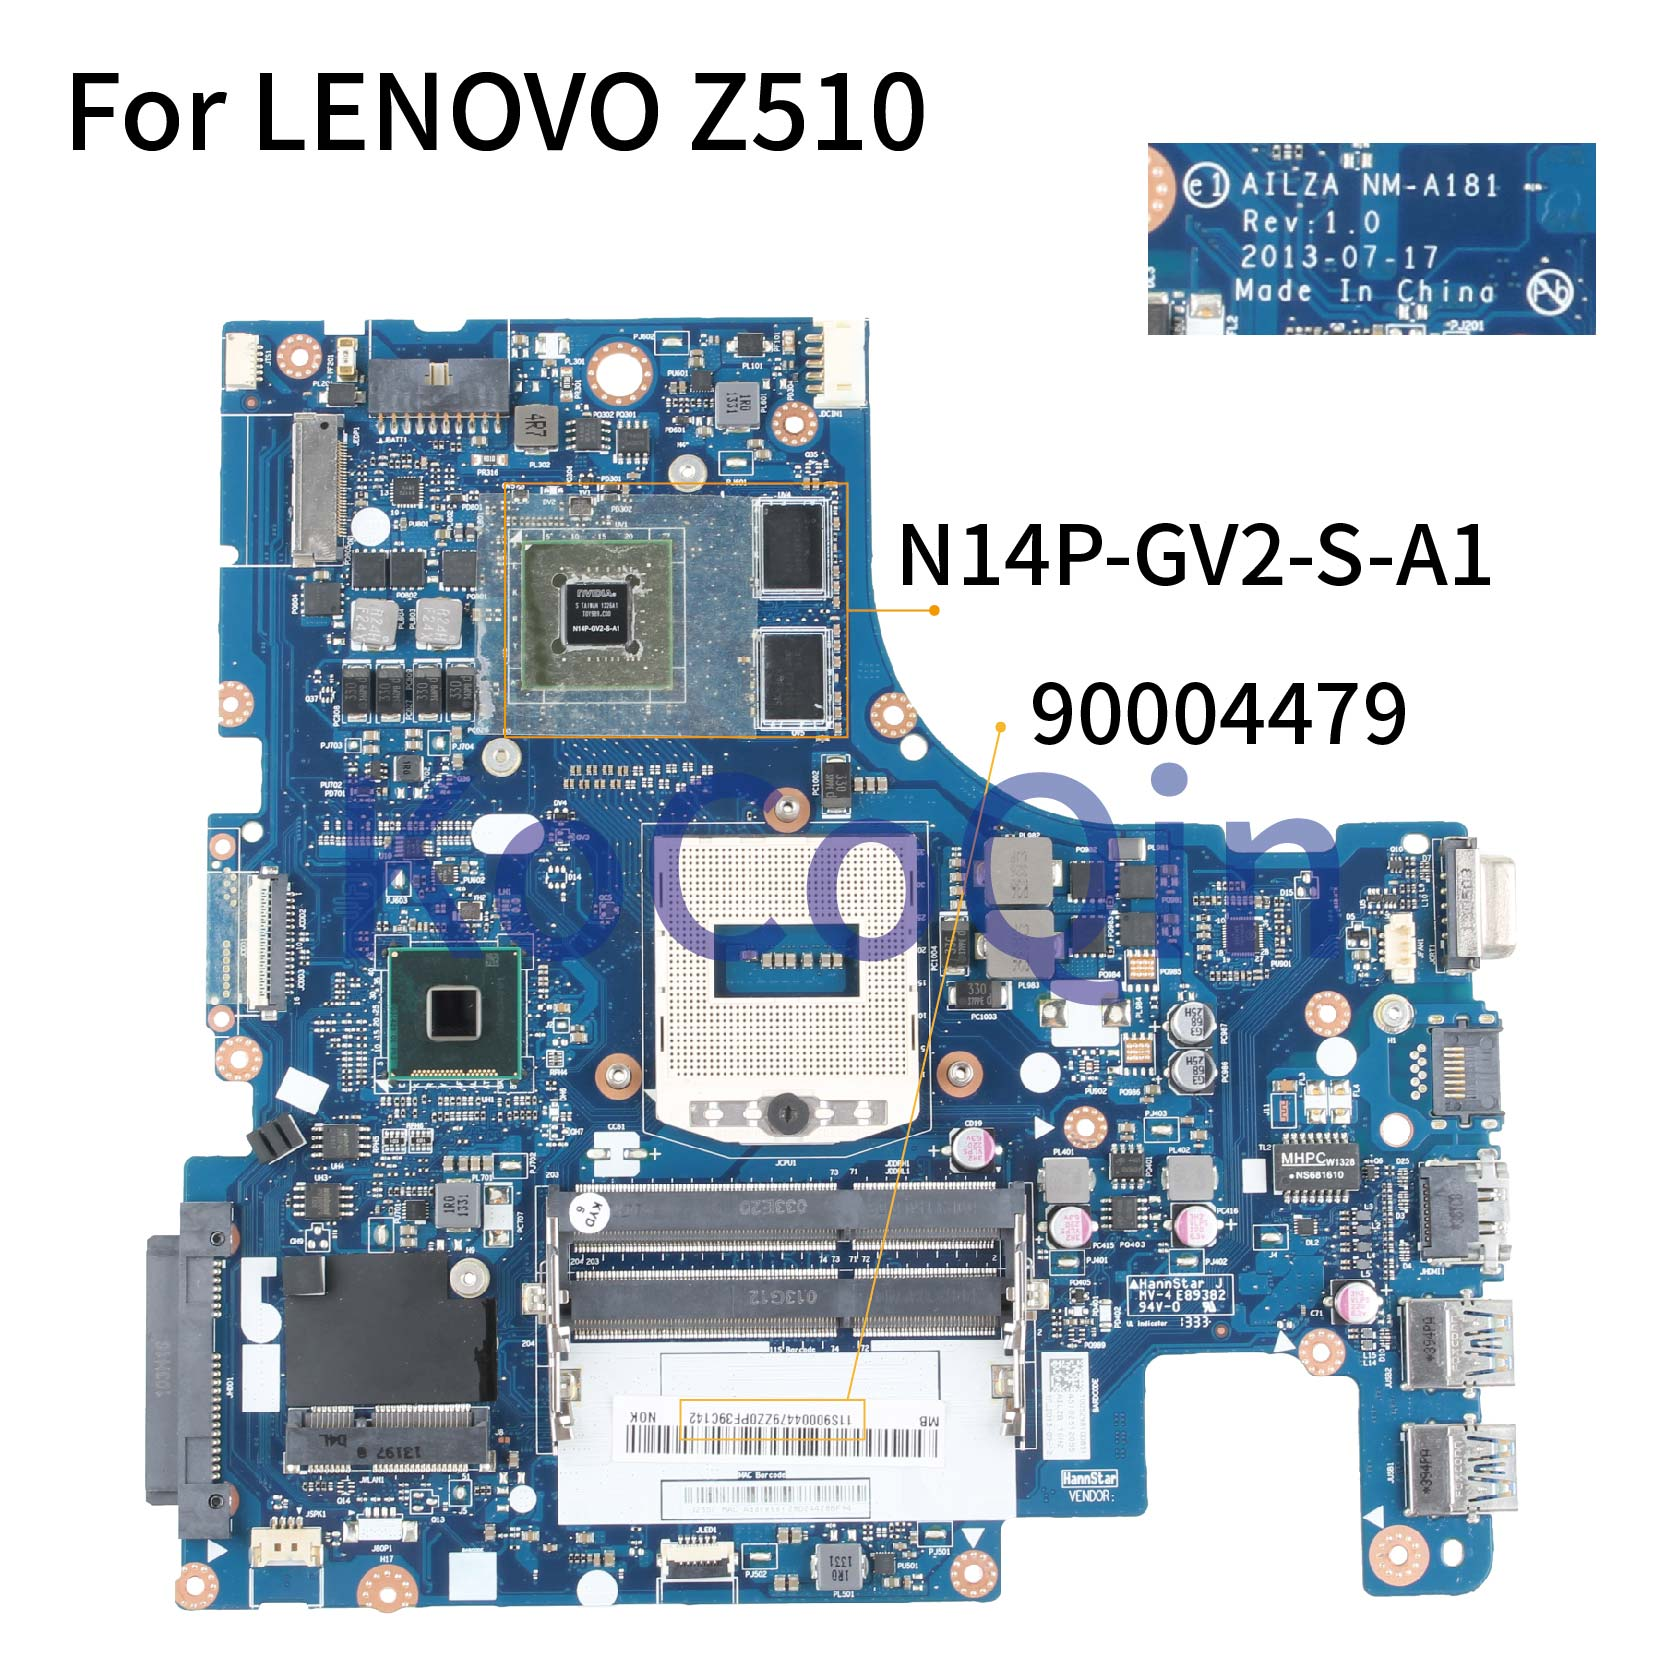 KoCoQin Laptop Motherboard For LENOVO Z510 Mainboard AILZA NM-A181 90004479 SR17E N14P-GV2-S-A1 2G